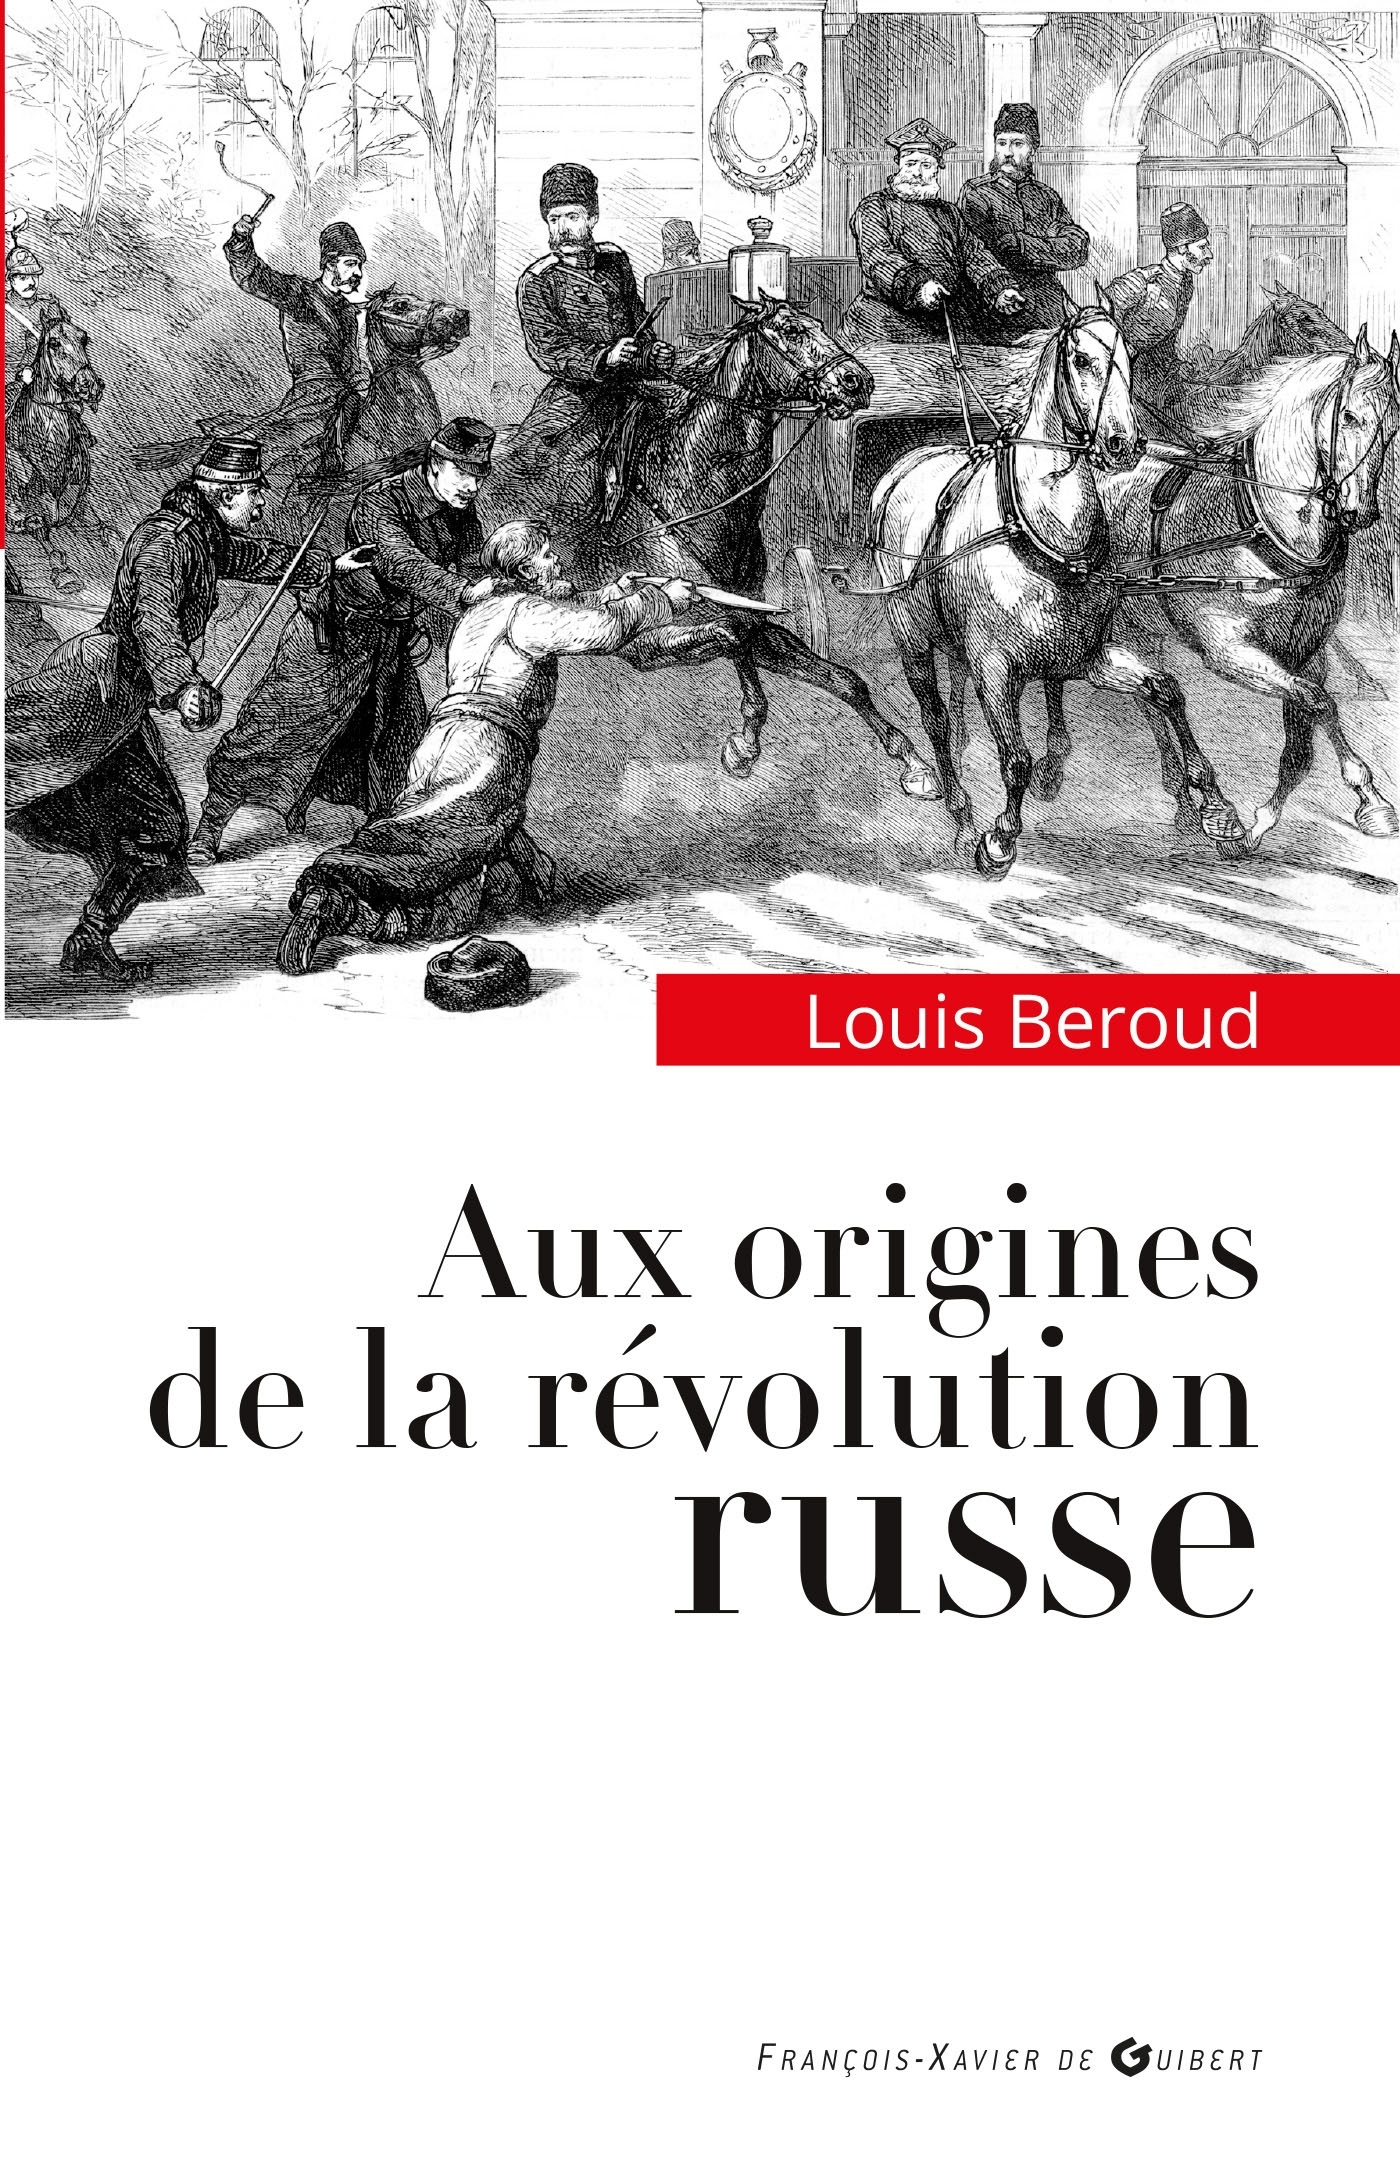 AUX ORIGINES DE LA REVOLUTION RUSSE